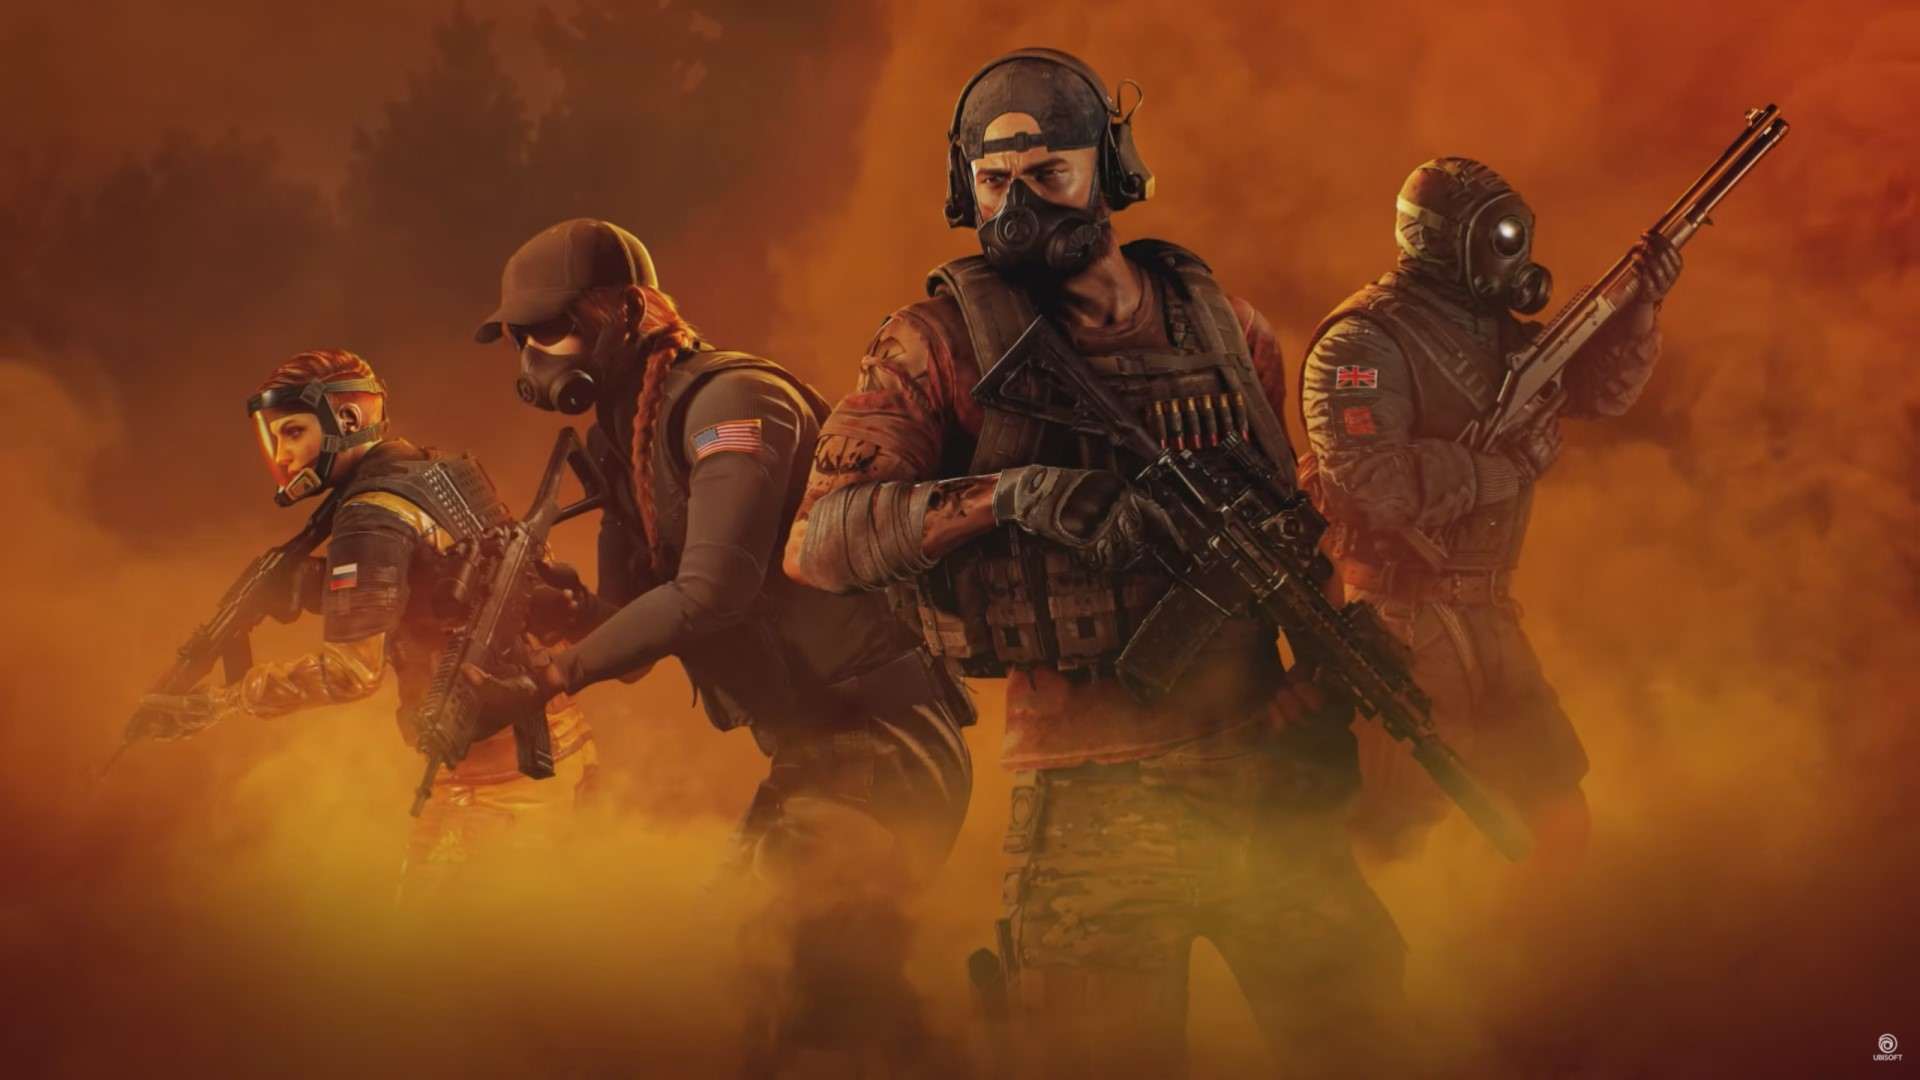 ghost recon breakpoint and rainbow six siege Amber Sky فعالية